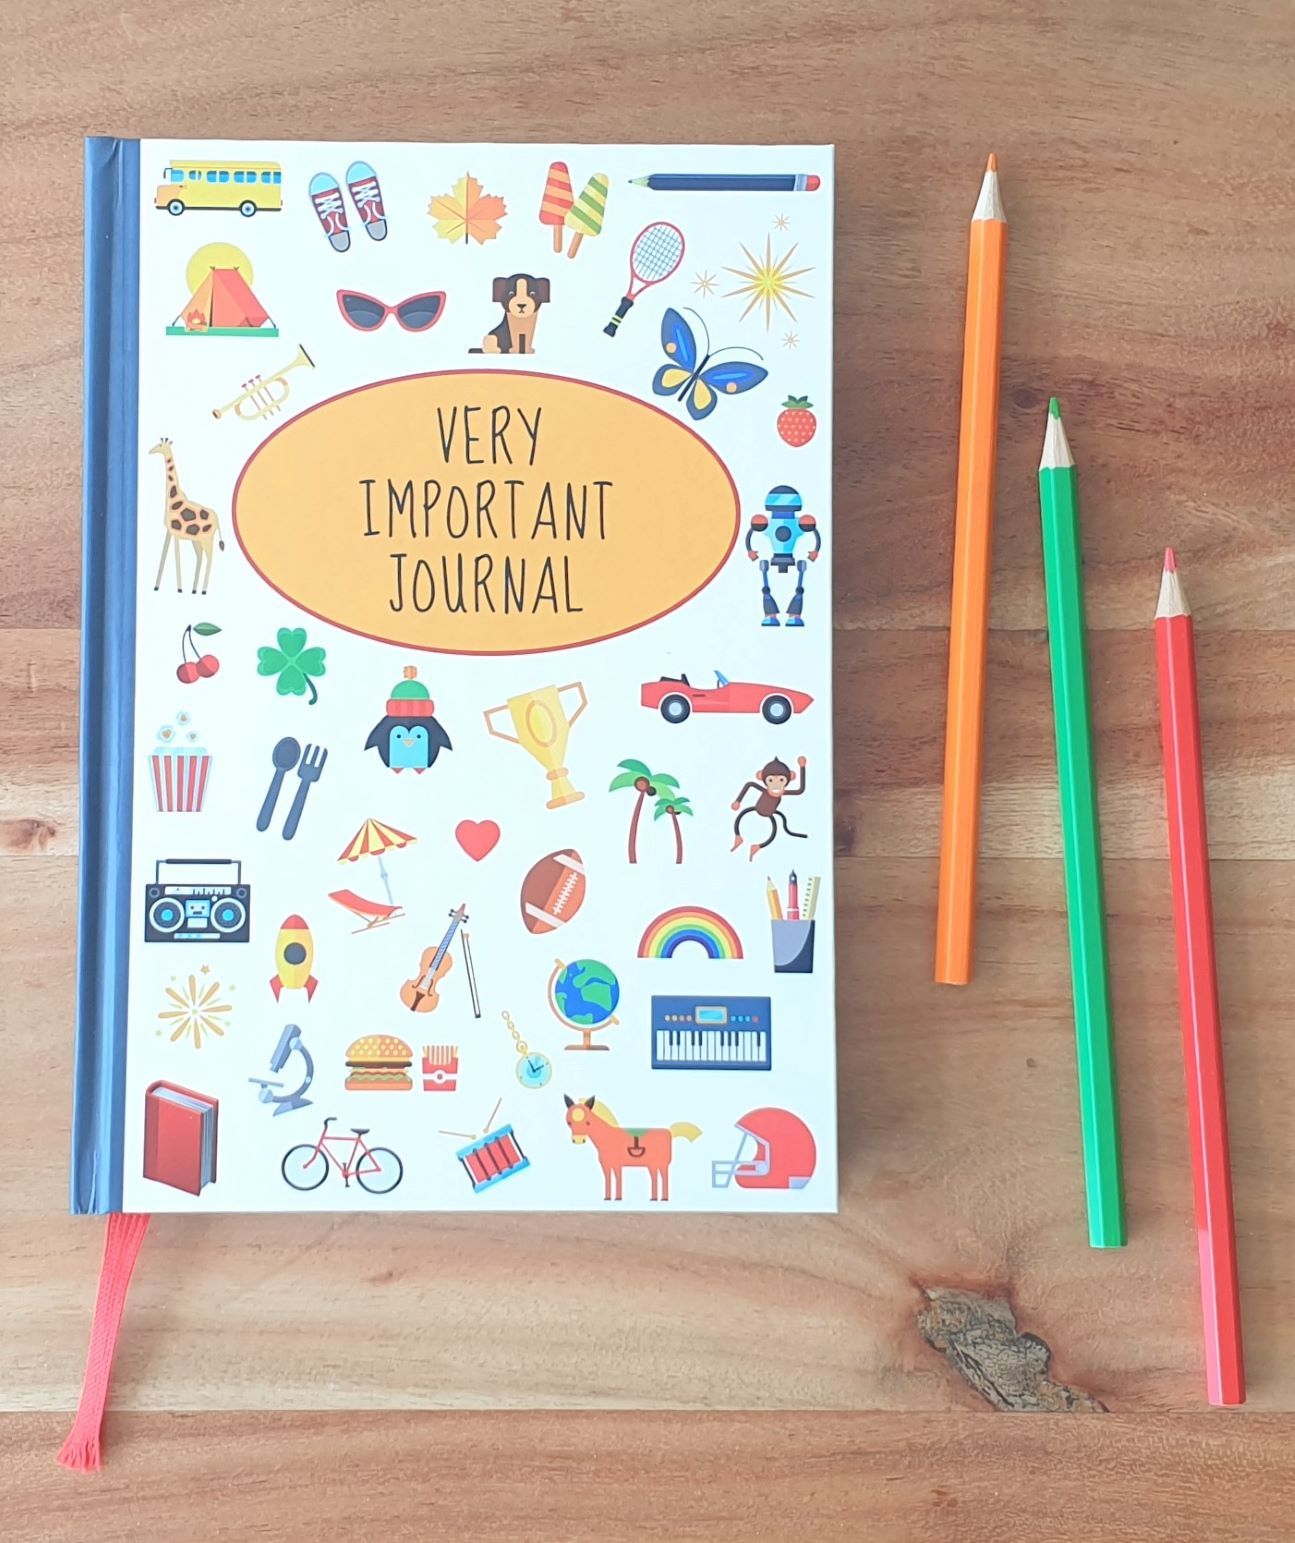 Very Important Journal - A Unique Journal for Kids